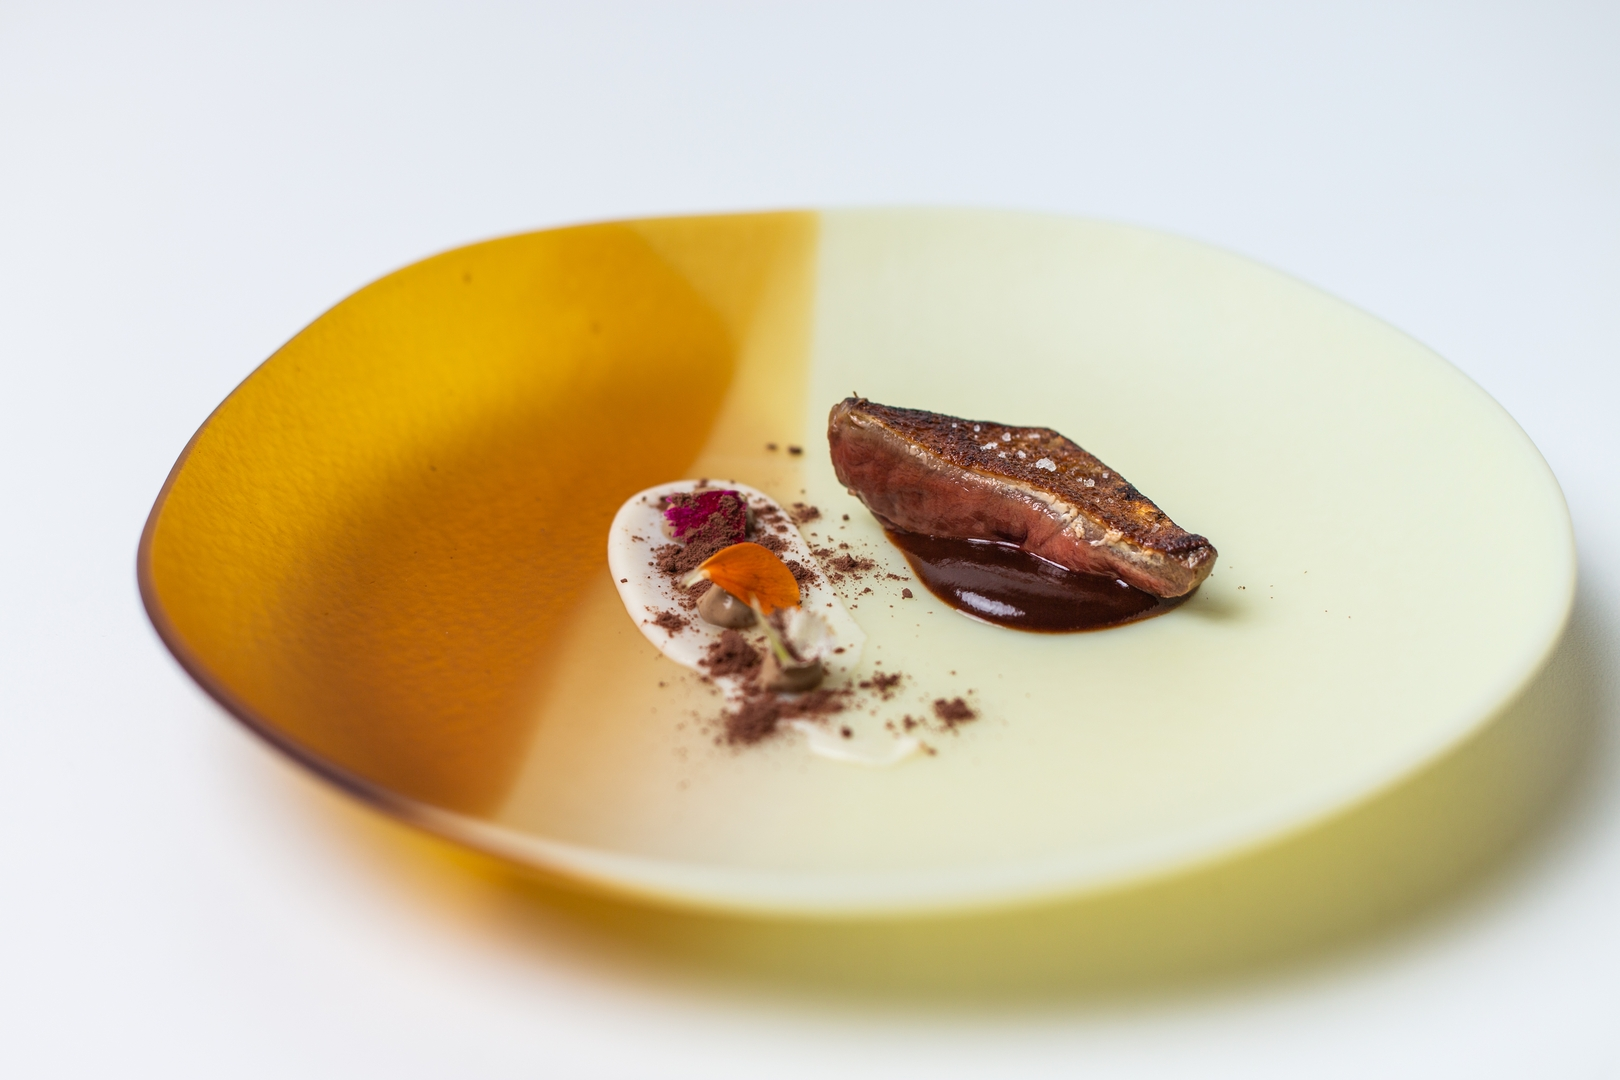 Pigueon with cocoa